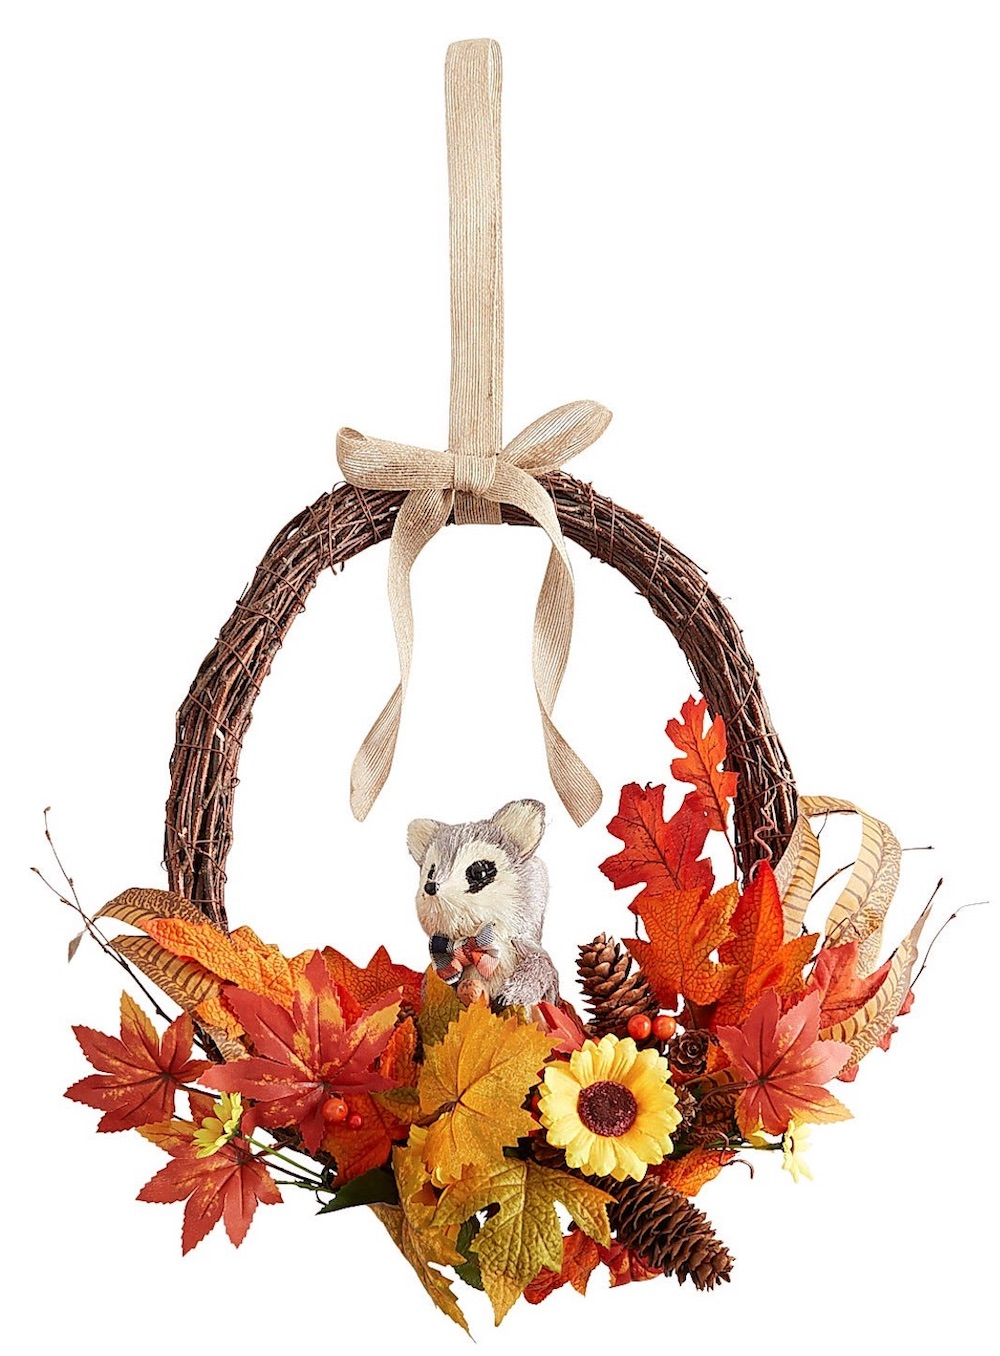 Farmhouse Fall Wreaths to Welcome Guests Faux Mini Wreath With Raccoon #Farmhouse #FarmhouseDecor #FarmhouseWreaths #RusticWreaths #CountryLiving #FallWreaths #AutumnWreaths